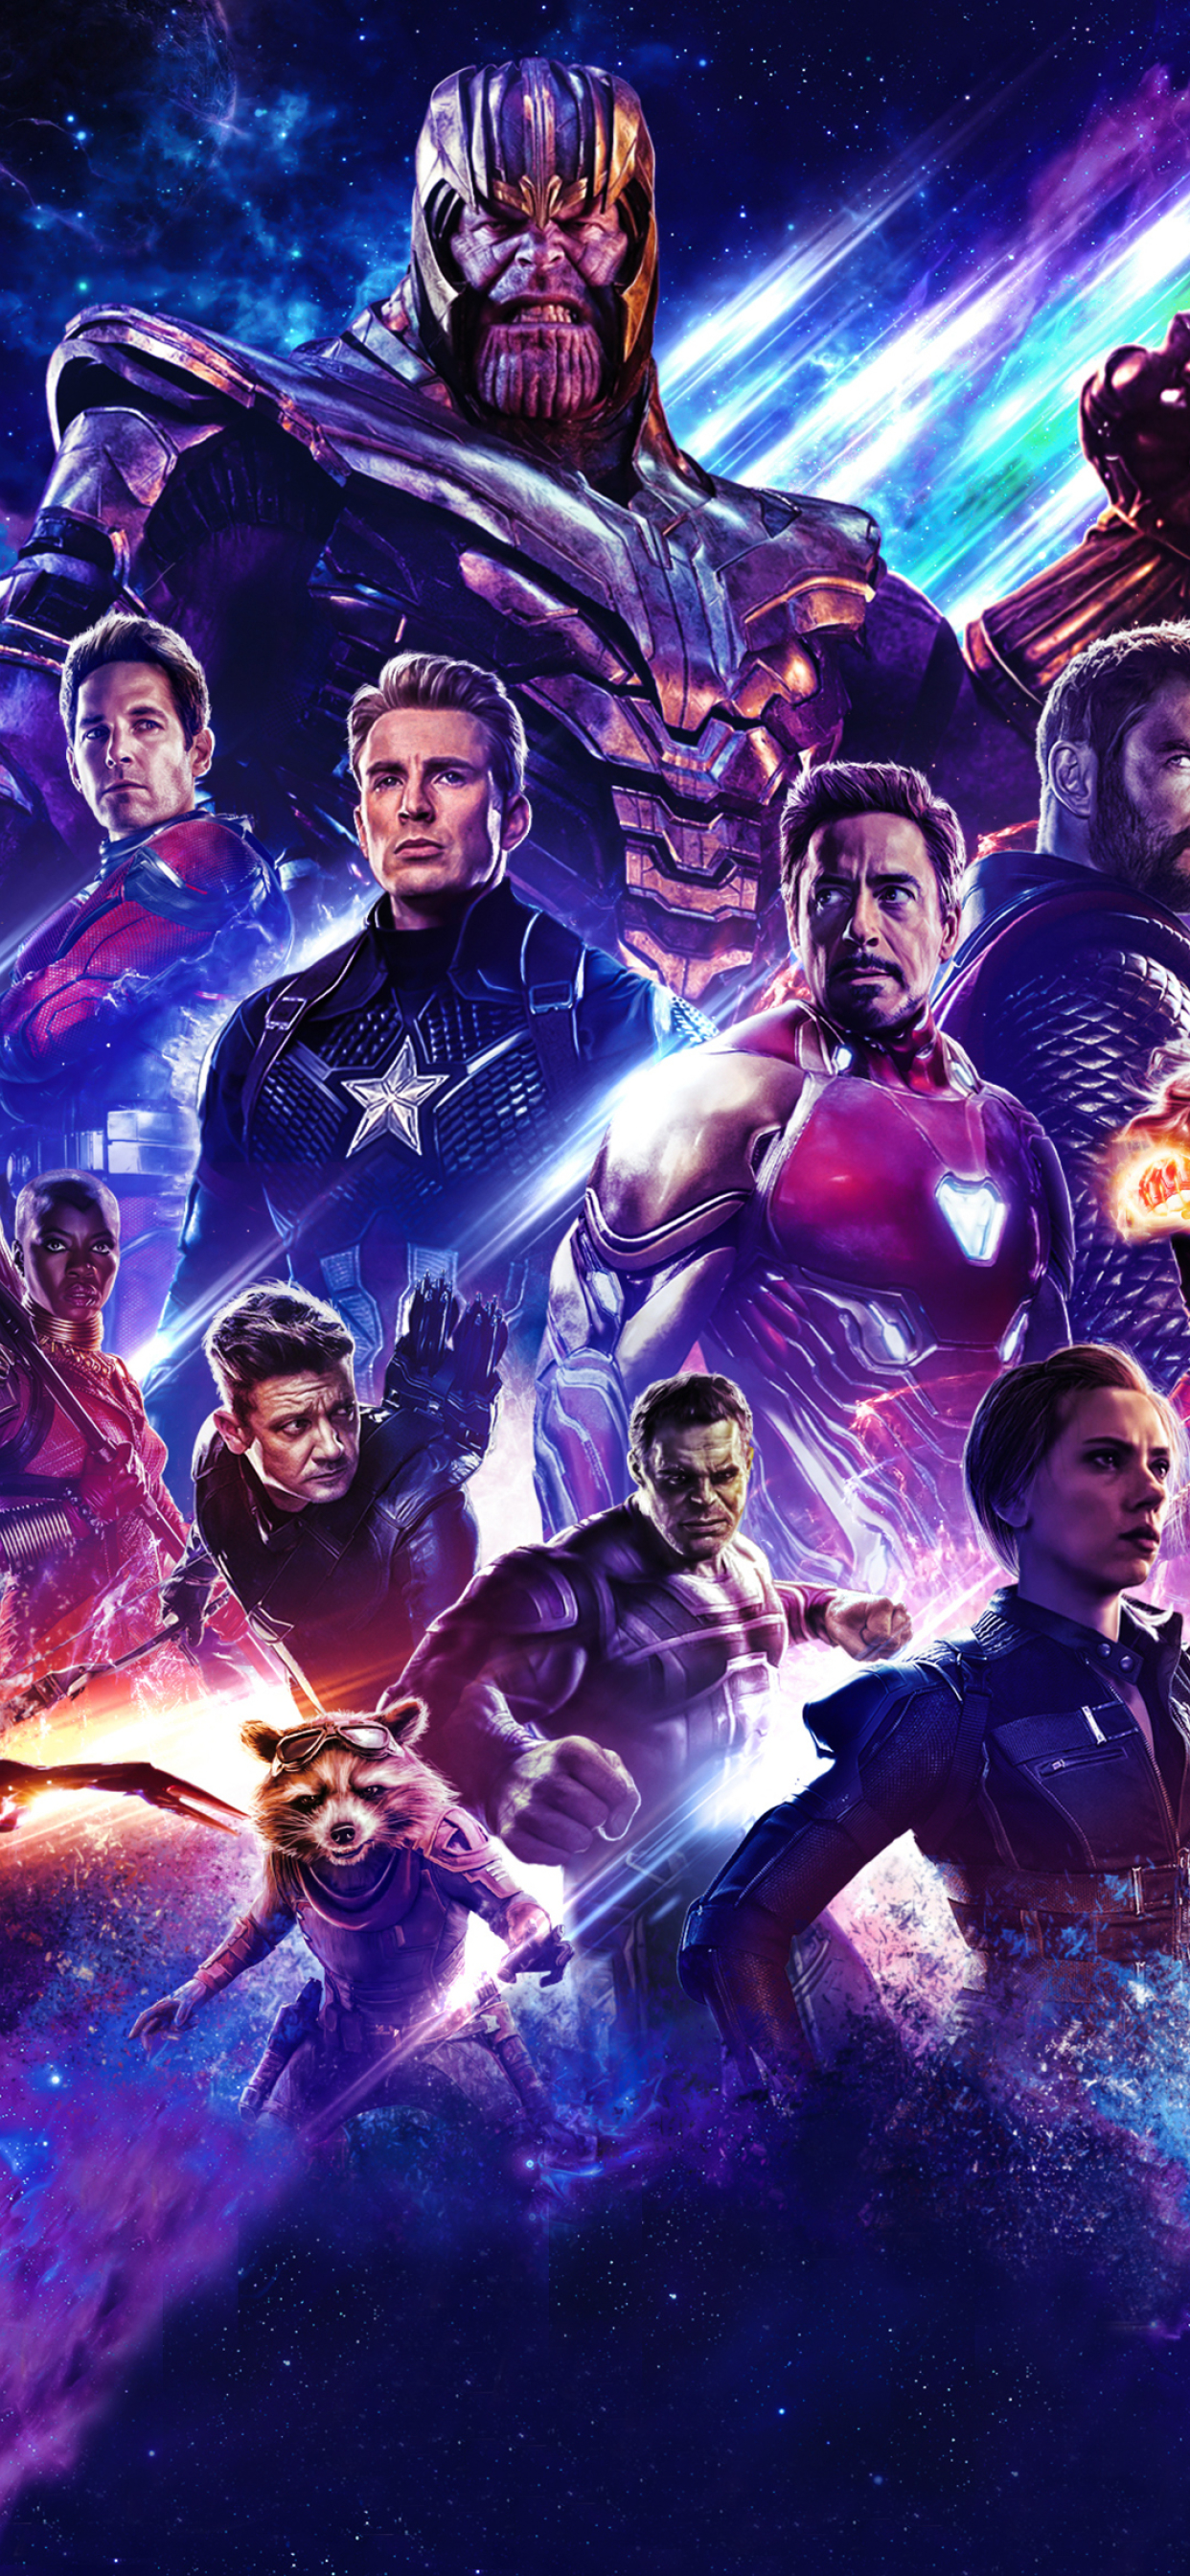 1242x2688 Avengers Endgame 2019 Movie Iphone Xs Max Wallpaper Hd